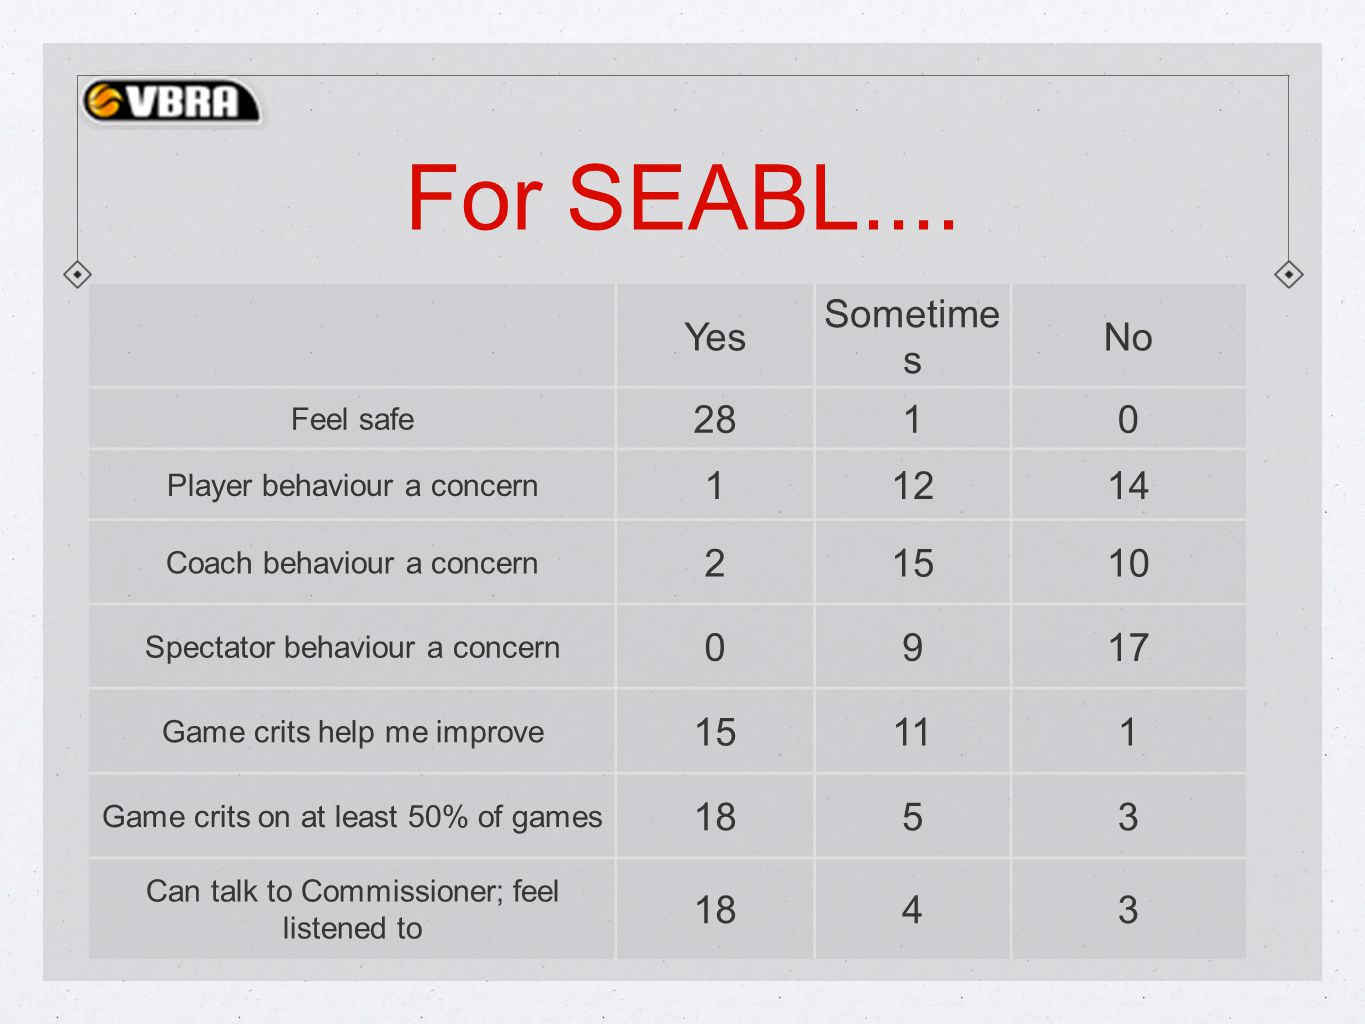 For SEABL....